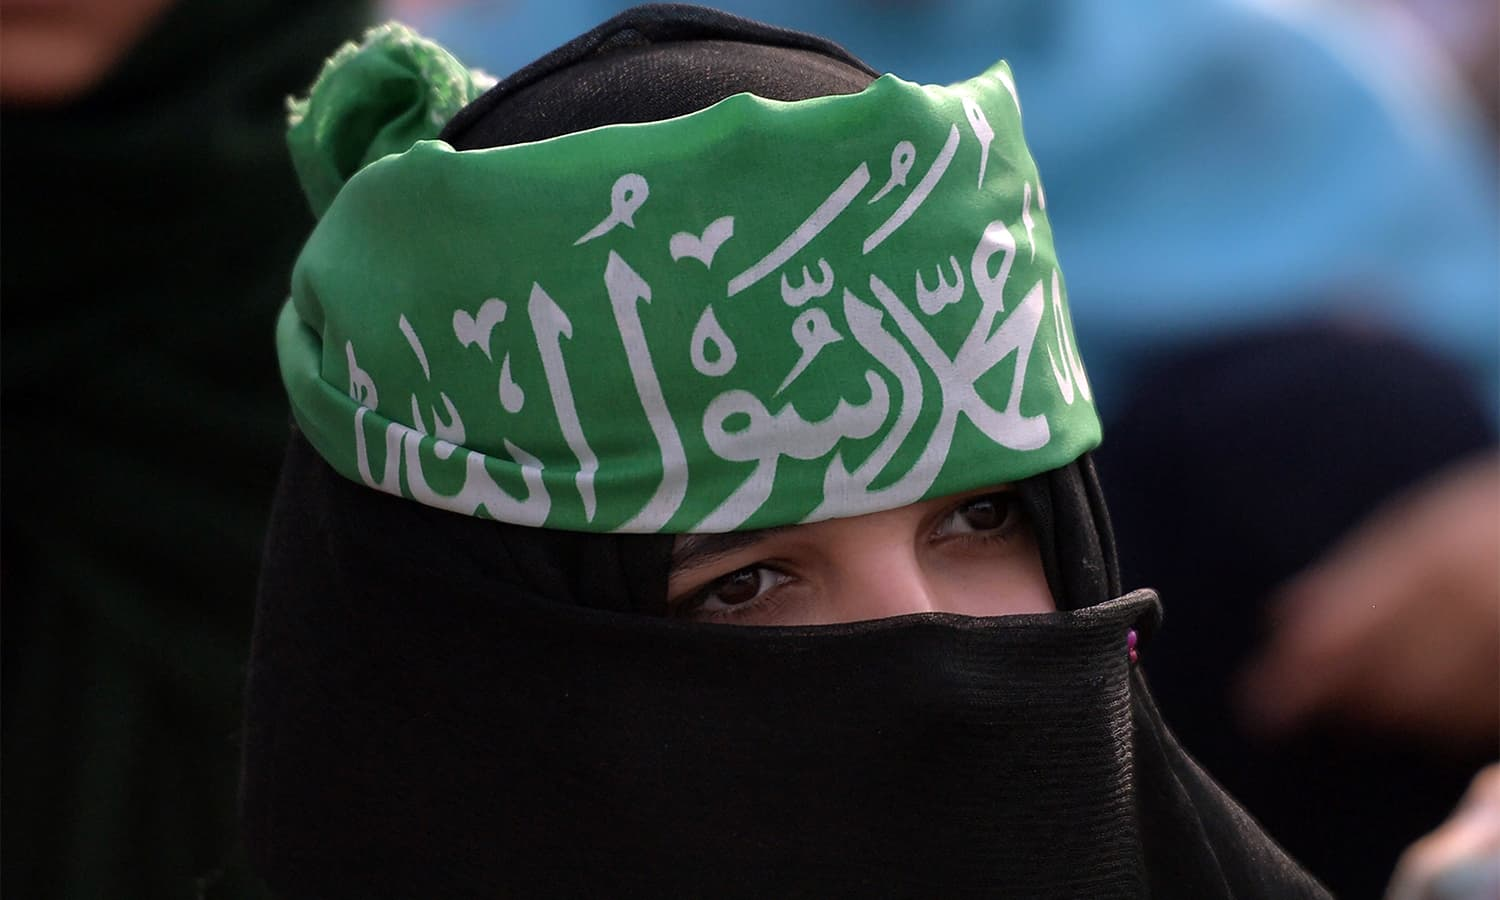 A Jamaat-i-Islami activist takes part in a gathering to mark Kashmir Day. — AFP